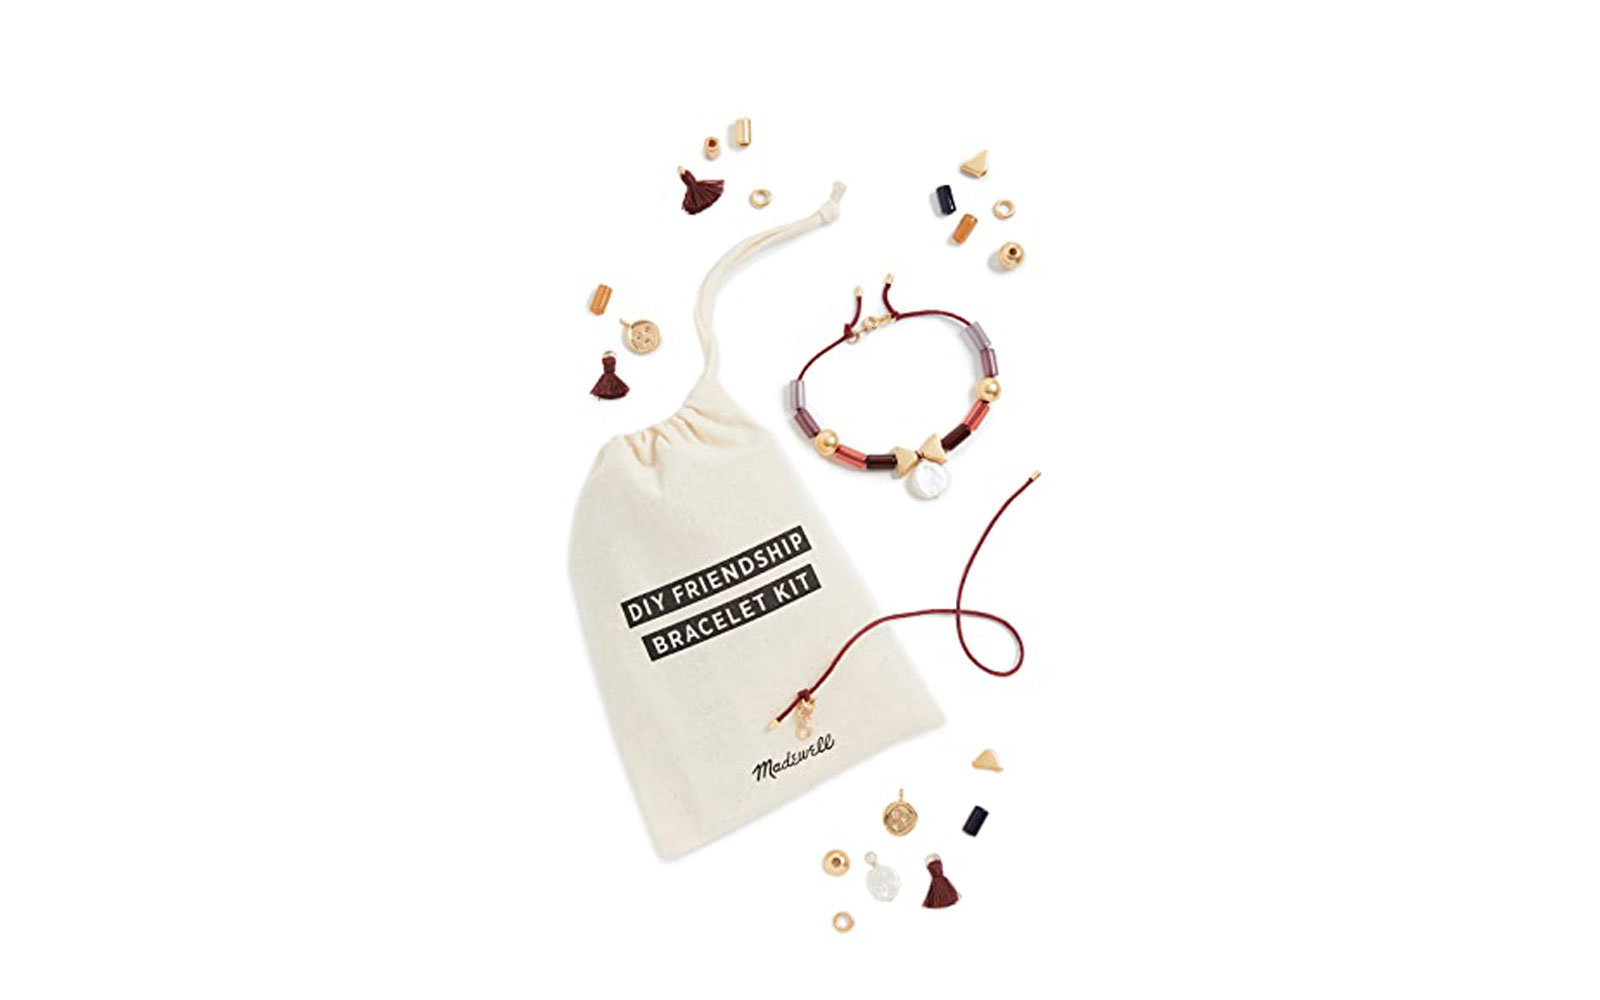 This gift not only provides a fun activity for you and a friend, but it also gives you both a lasting memory of your time spent together.To buy: shopbop.com, $34